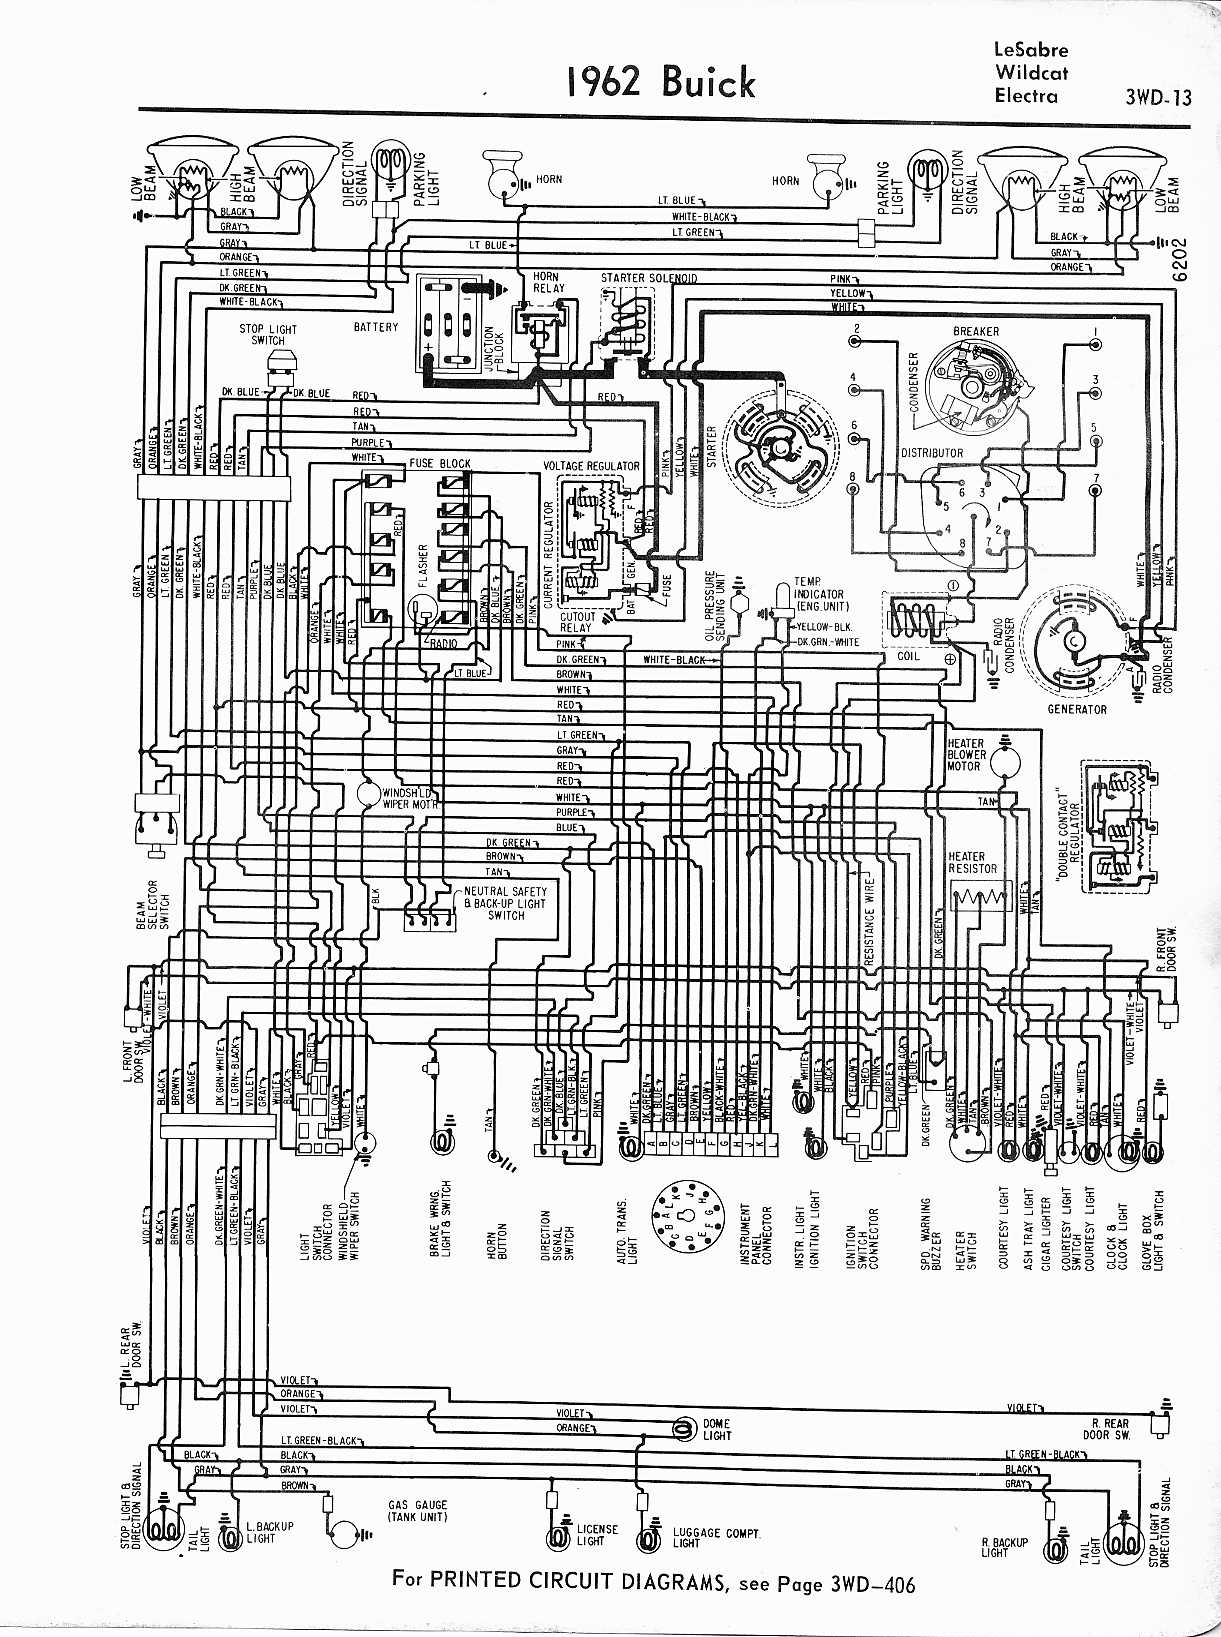 1964 buick skylark fuse box diagram wiring schematic auto rh 6weeks co uk